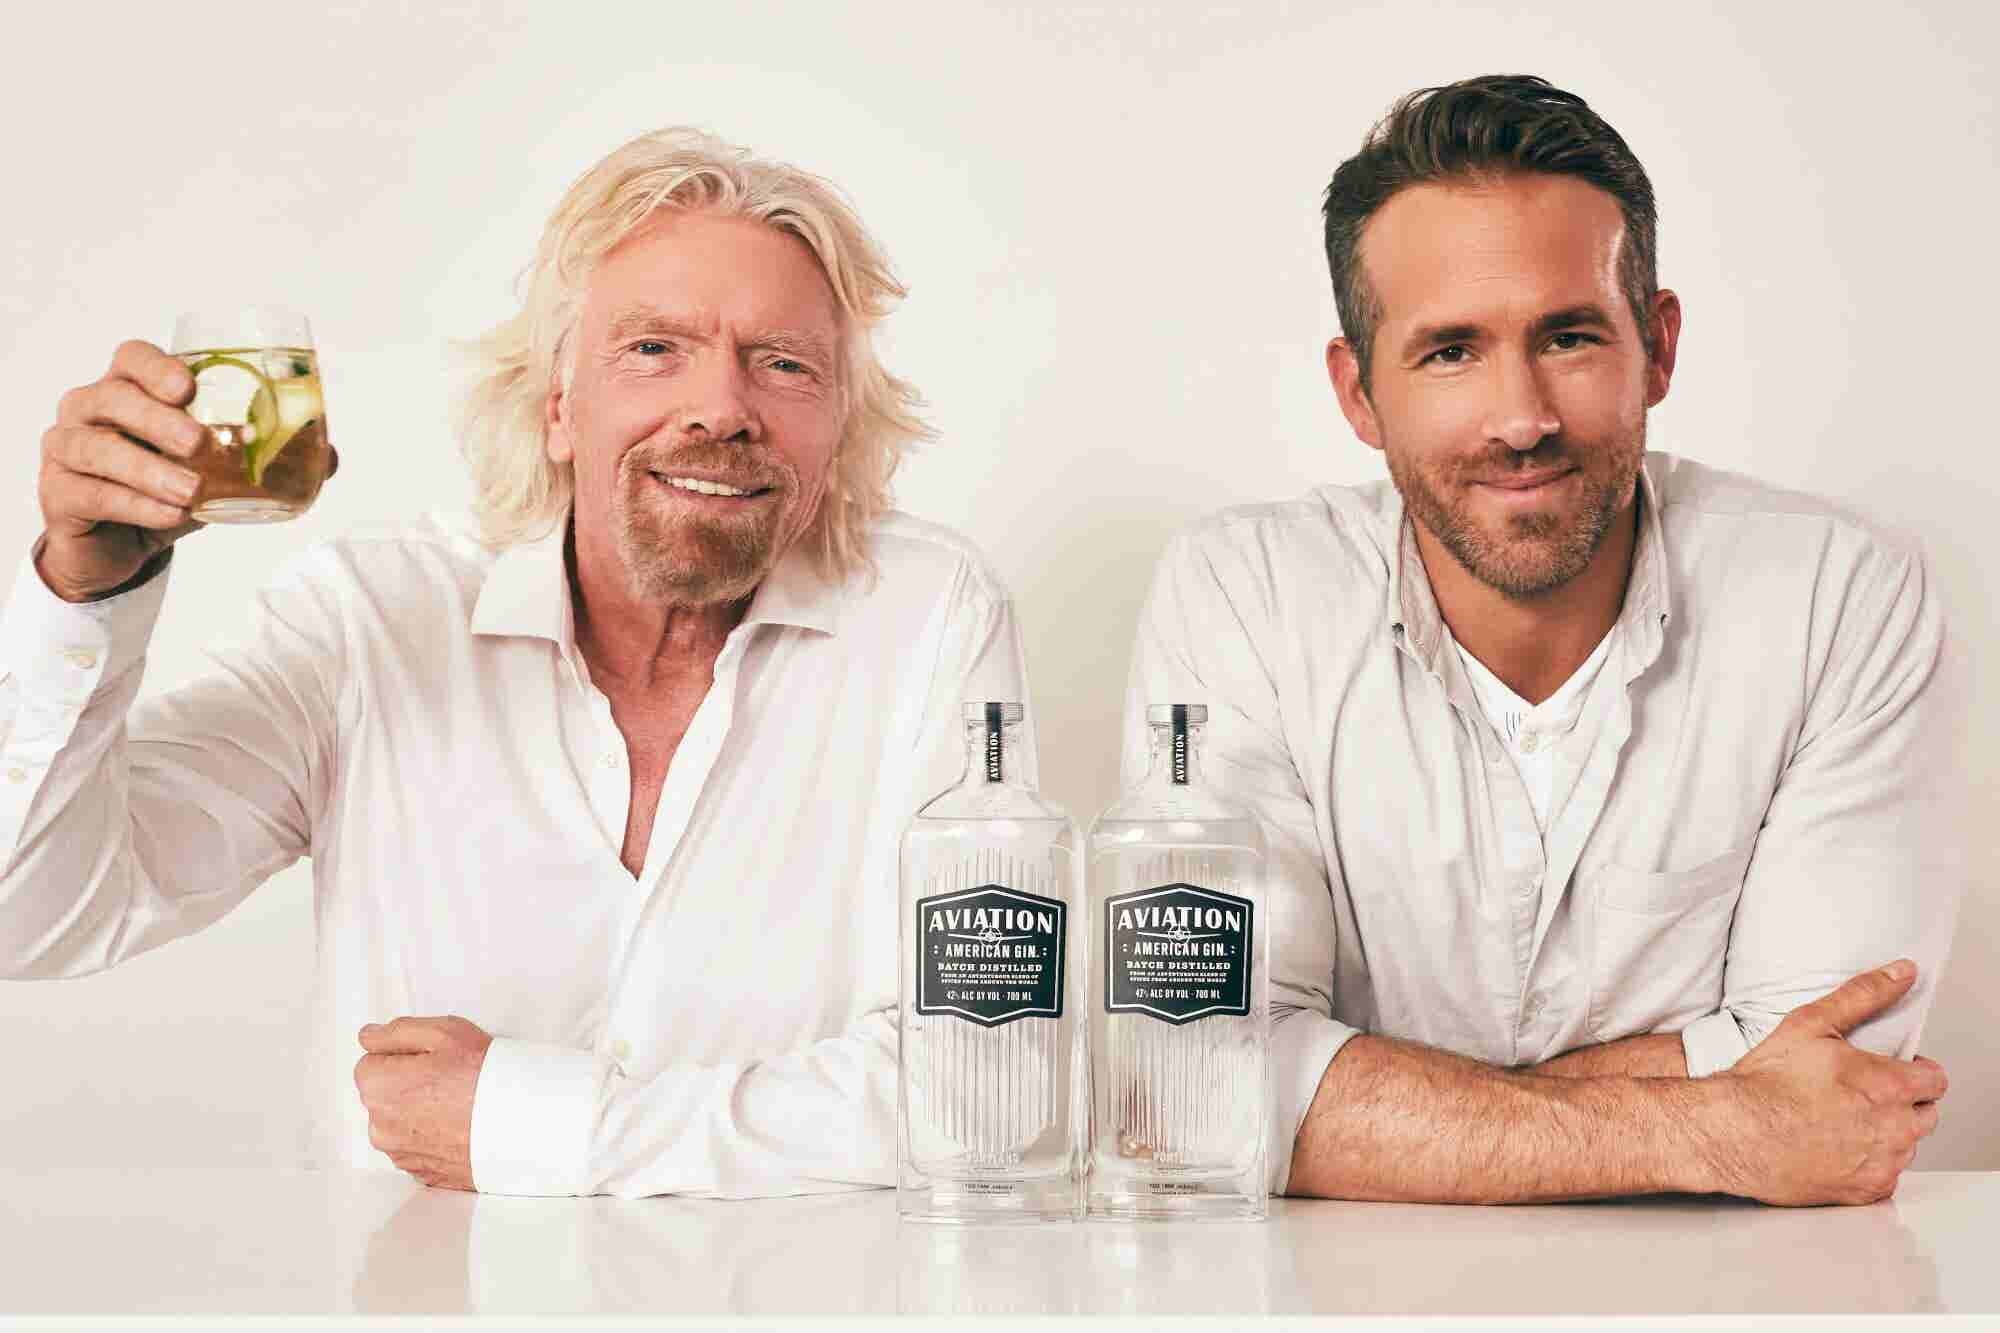 Richard Branson Skewers Ryan Reynolds's Business Knowledge as Virgin Atlantic and Aviation Gin Announce Partnership